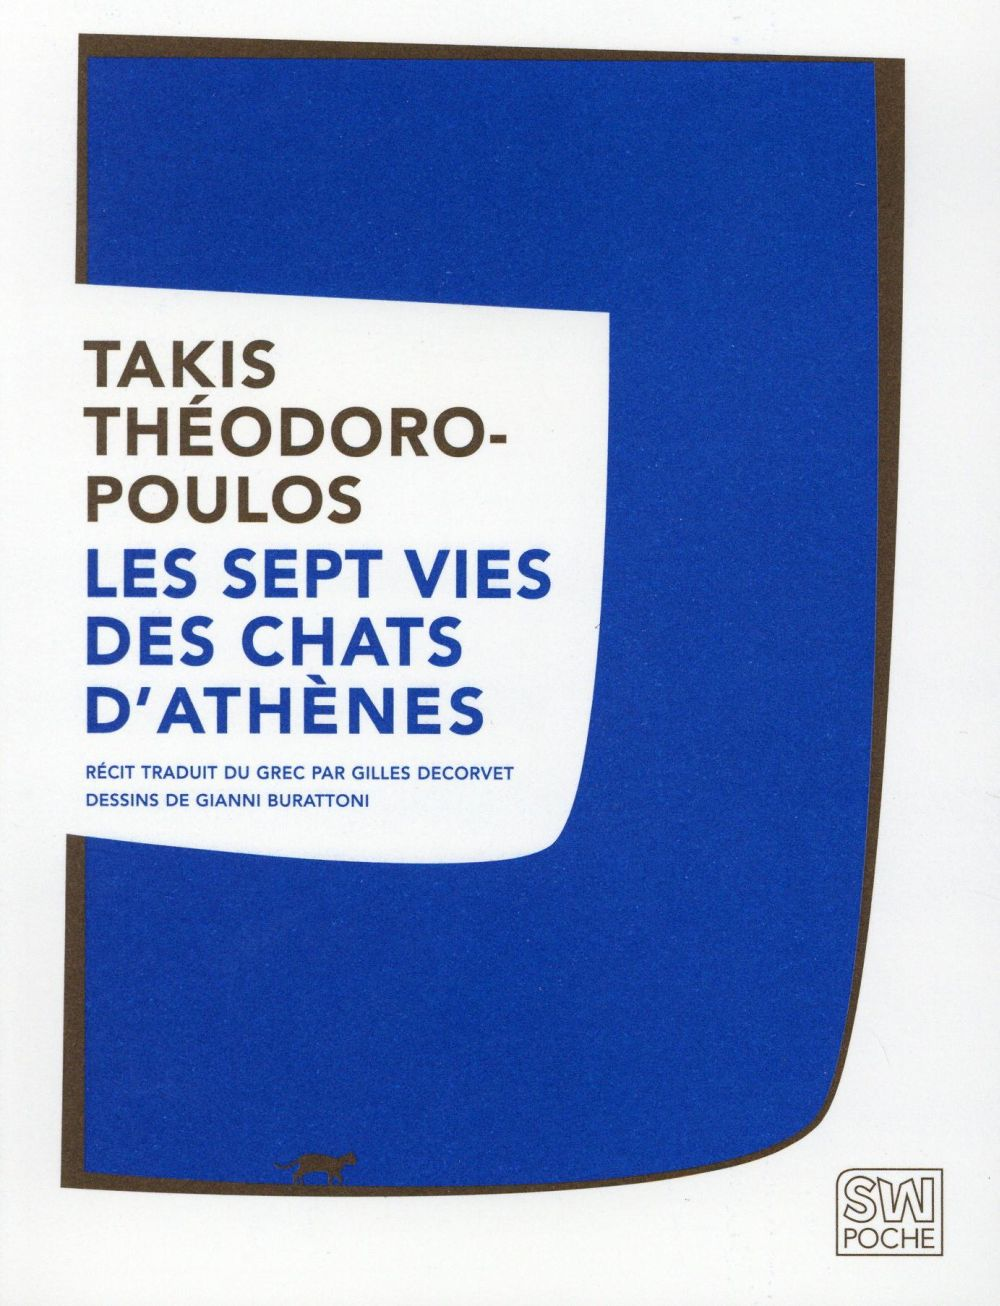 SEPT VIES DES CHATS D ATHENES THEODOROPOULOS TAKIS SABINE WESPIESE